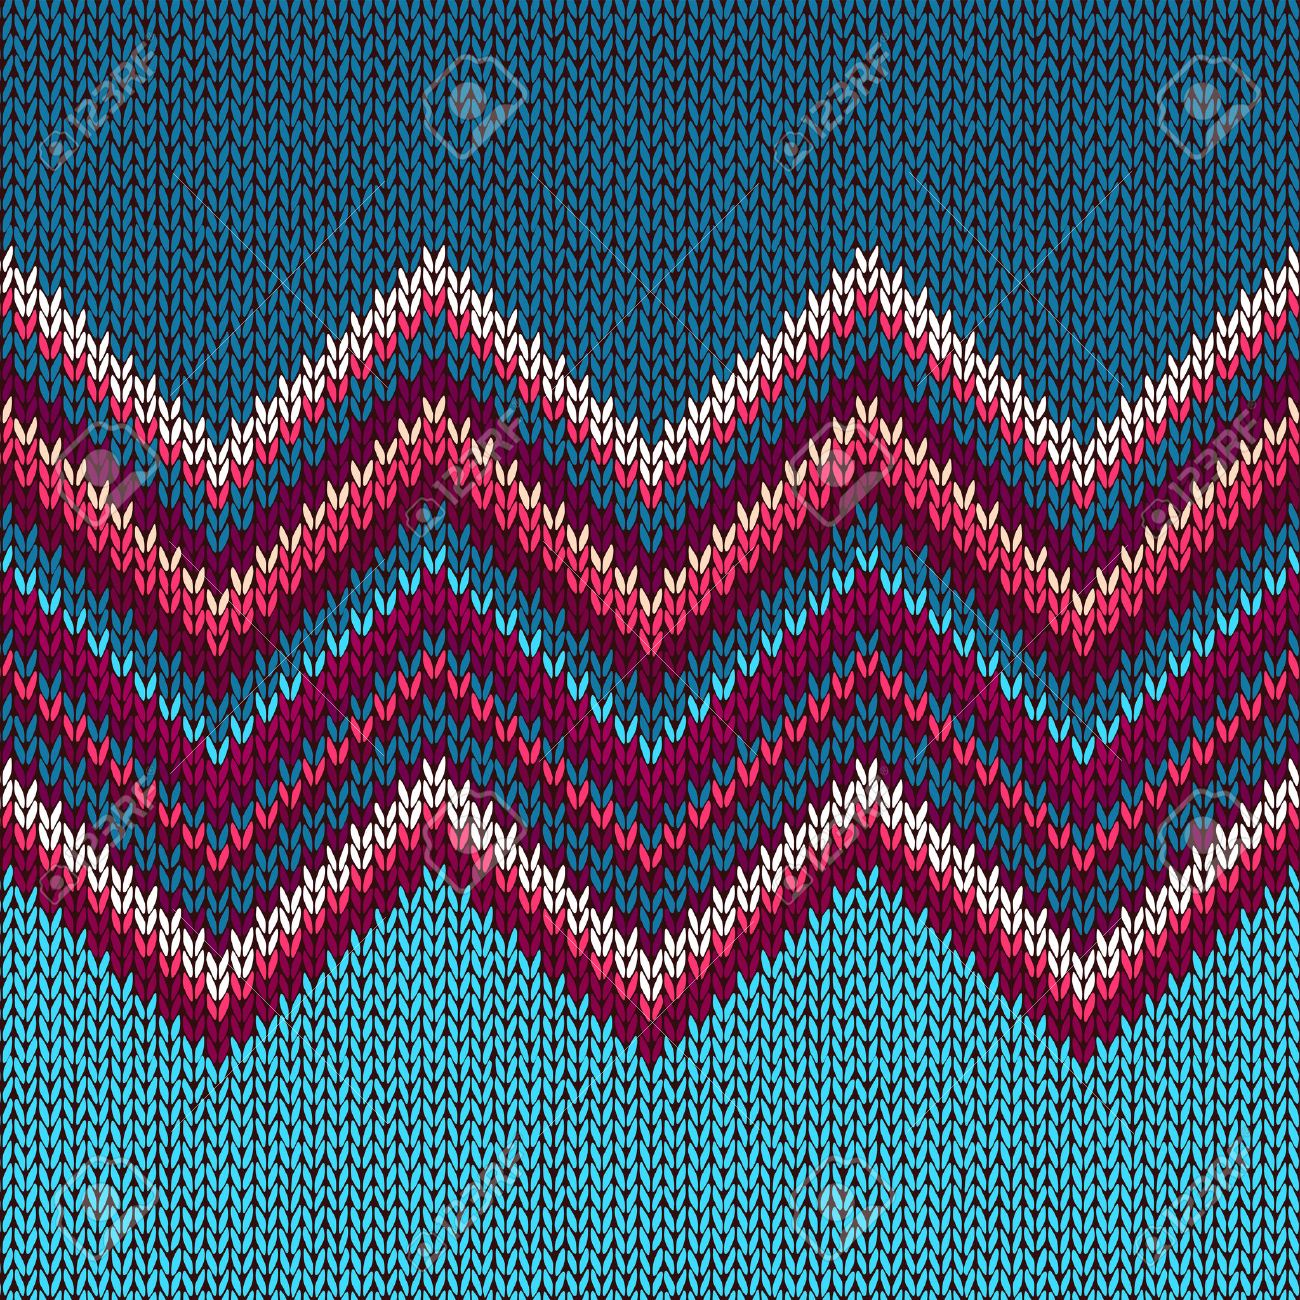 Knitted Seamless Fabric Pattern, Beautiful Blue Red Pink Knit ...